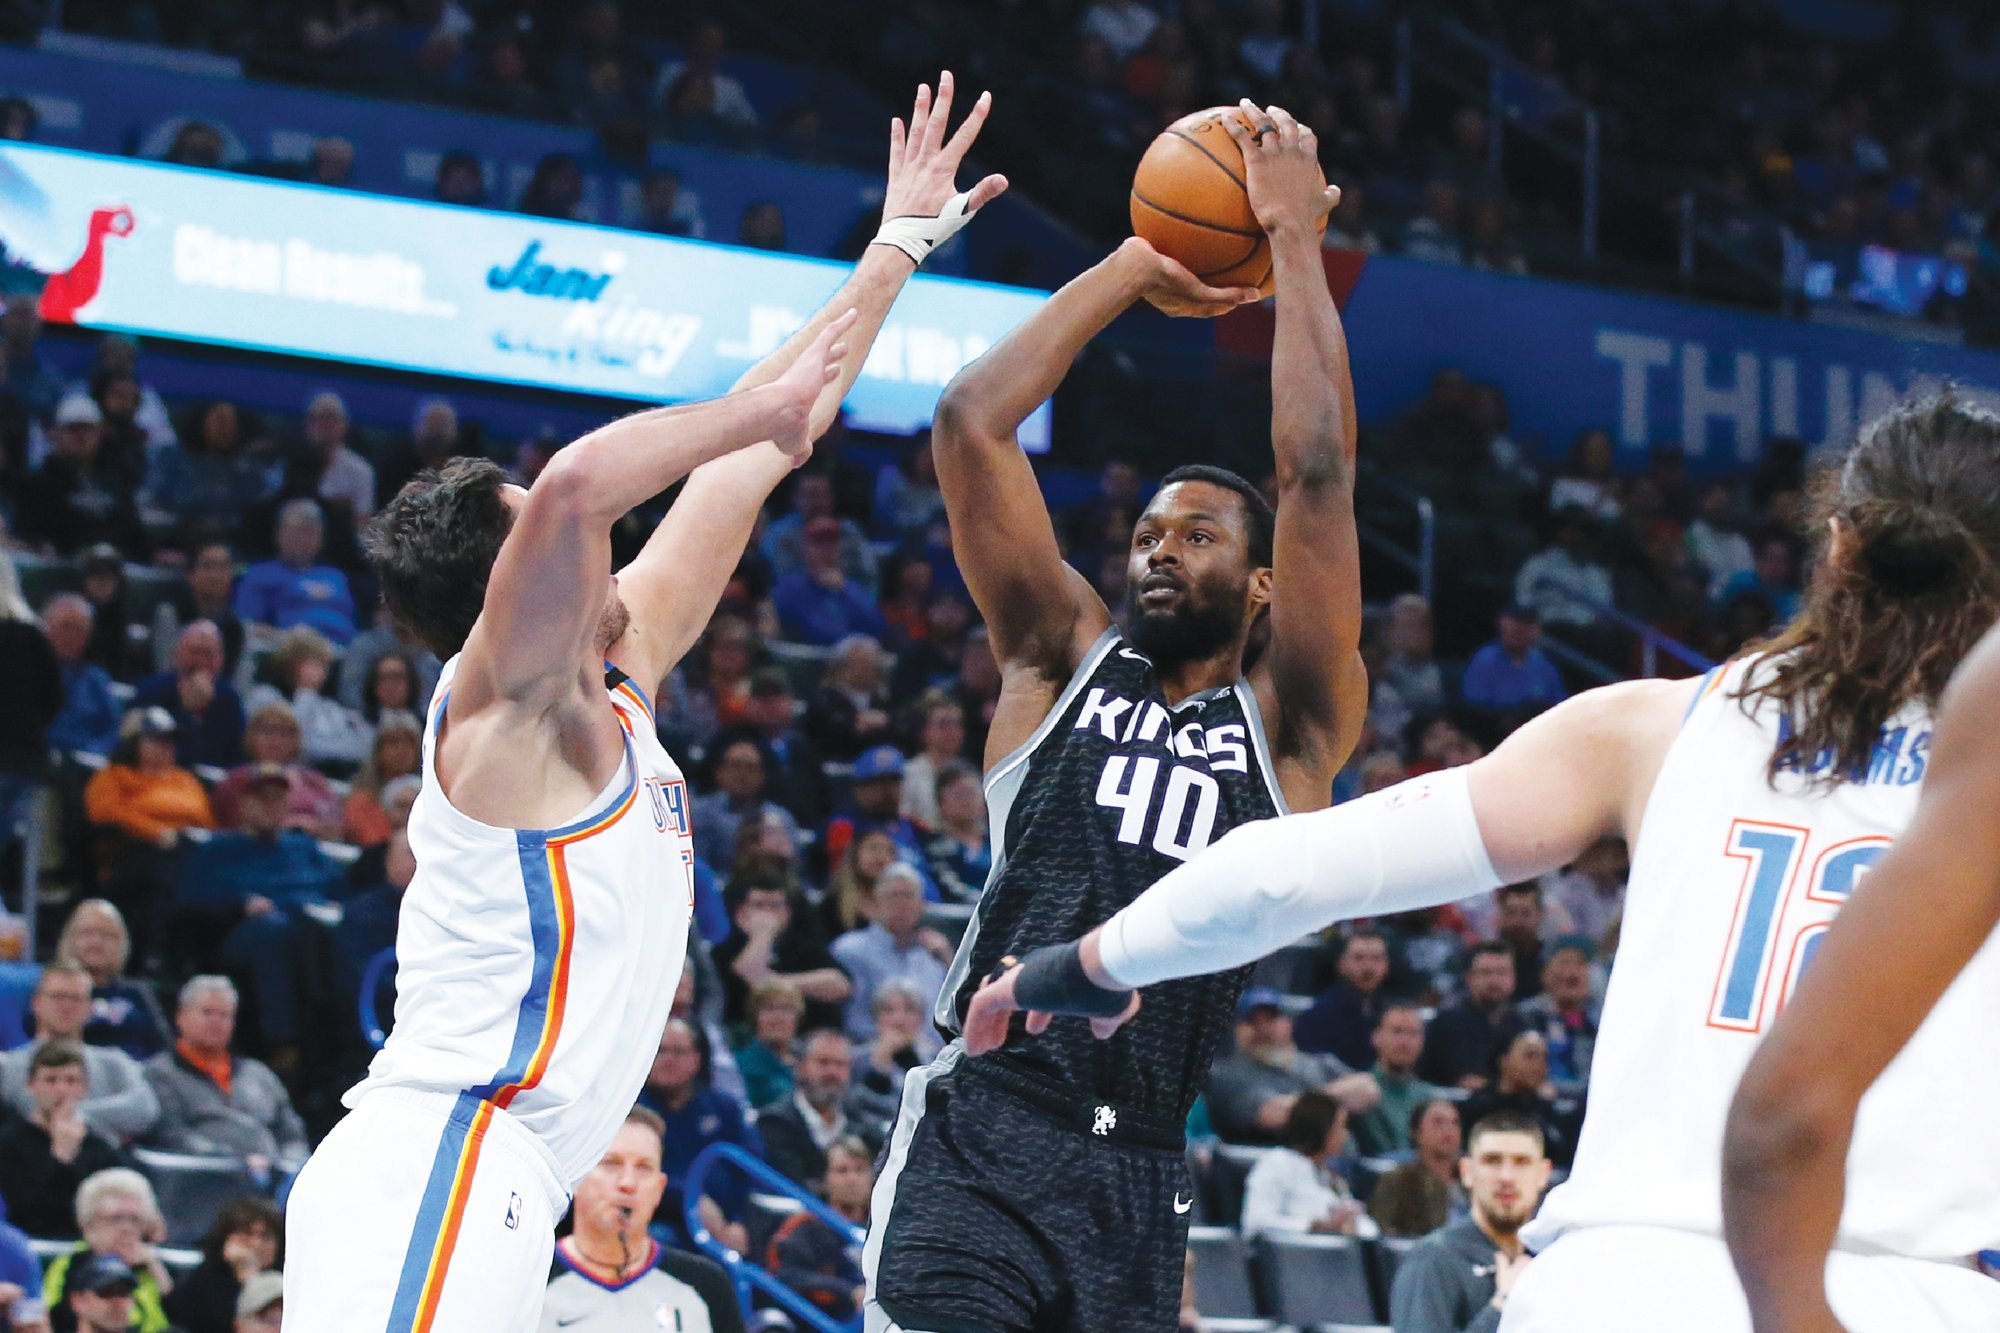 Sacramento Kings forward Harrison Barnes (40) tested positive for the coronavirus, but still plans to join his team in Orlando, Florida for the NBA restart once he has been cleared to return.